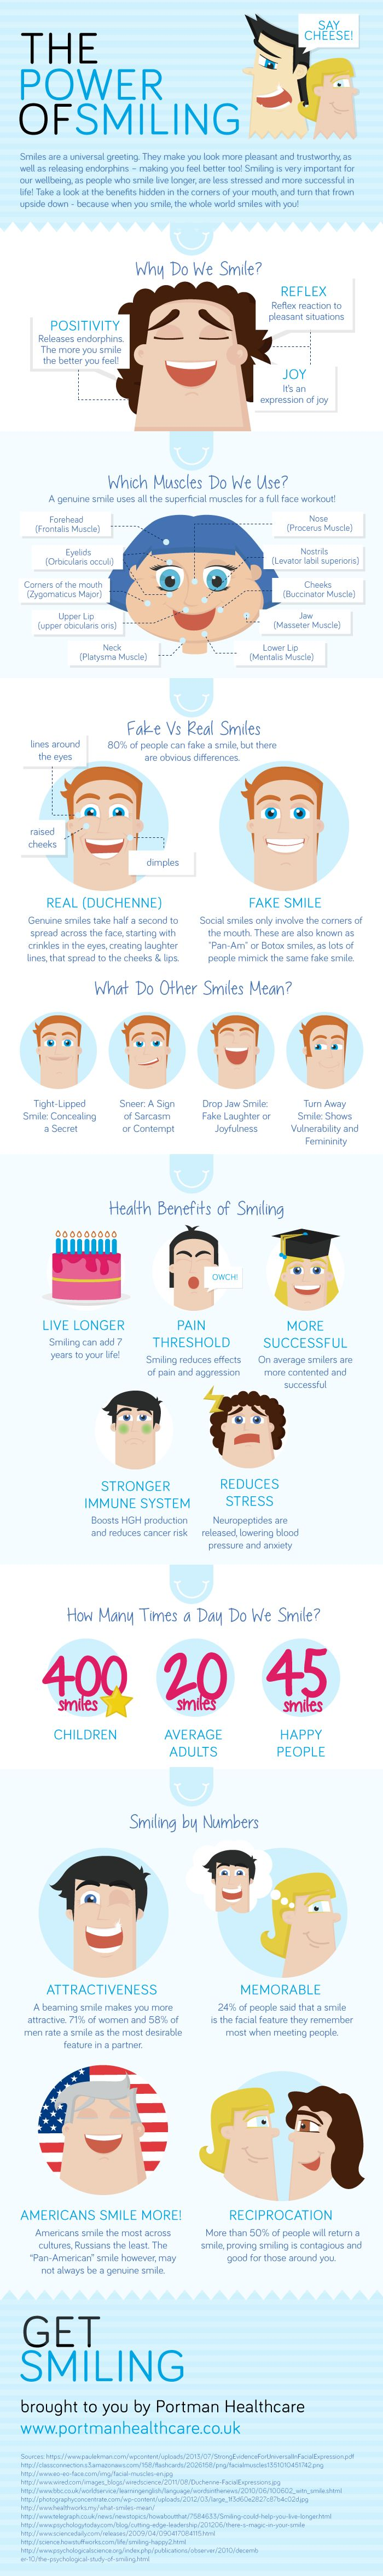 The Power of Smiling #infographic #Smile #Health